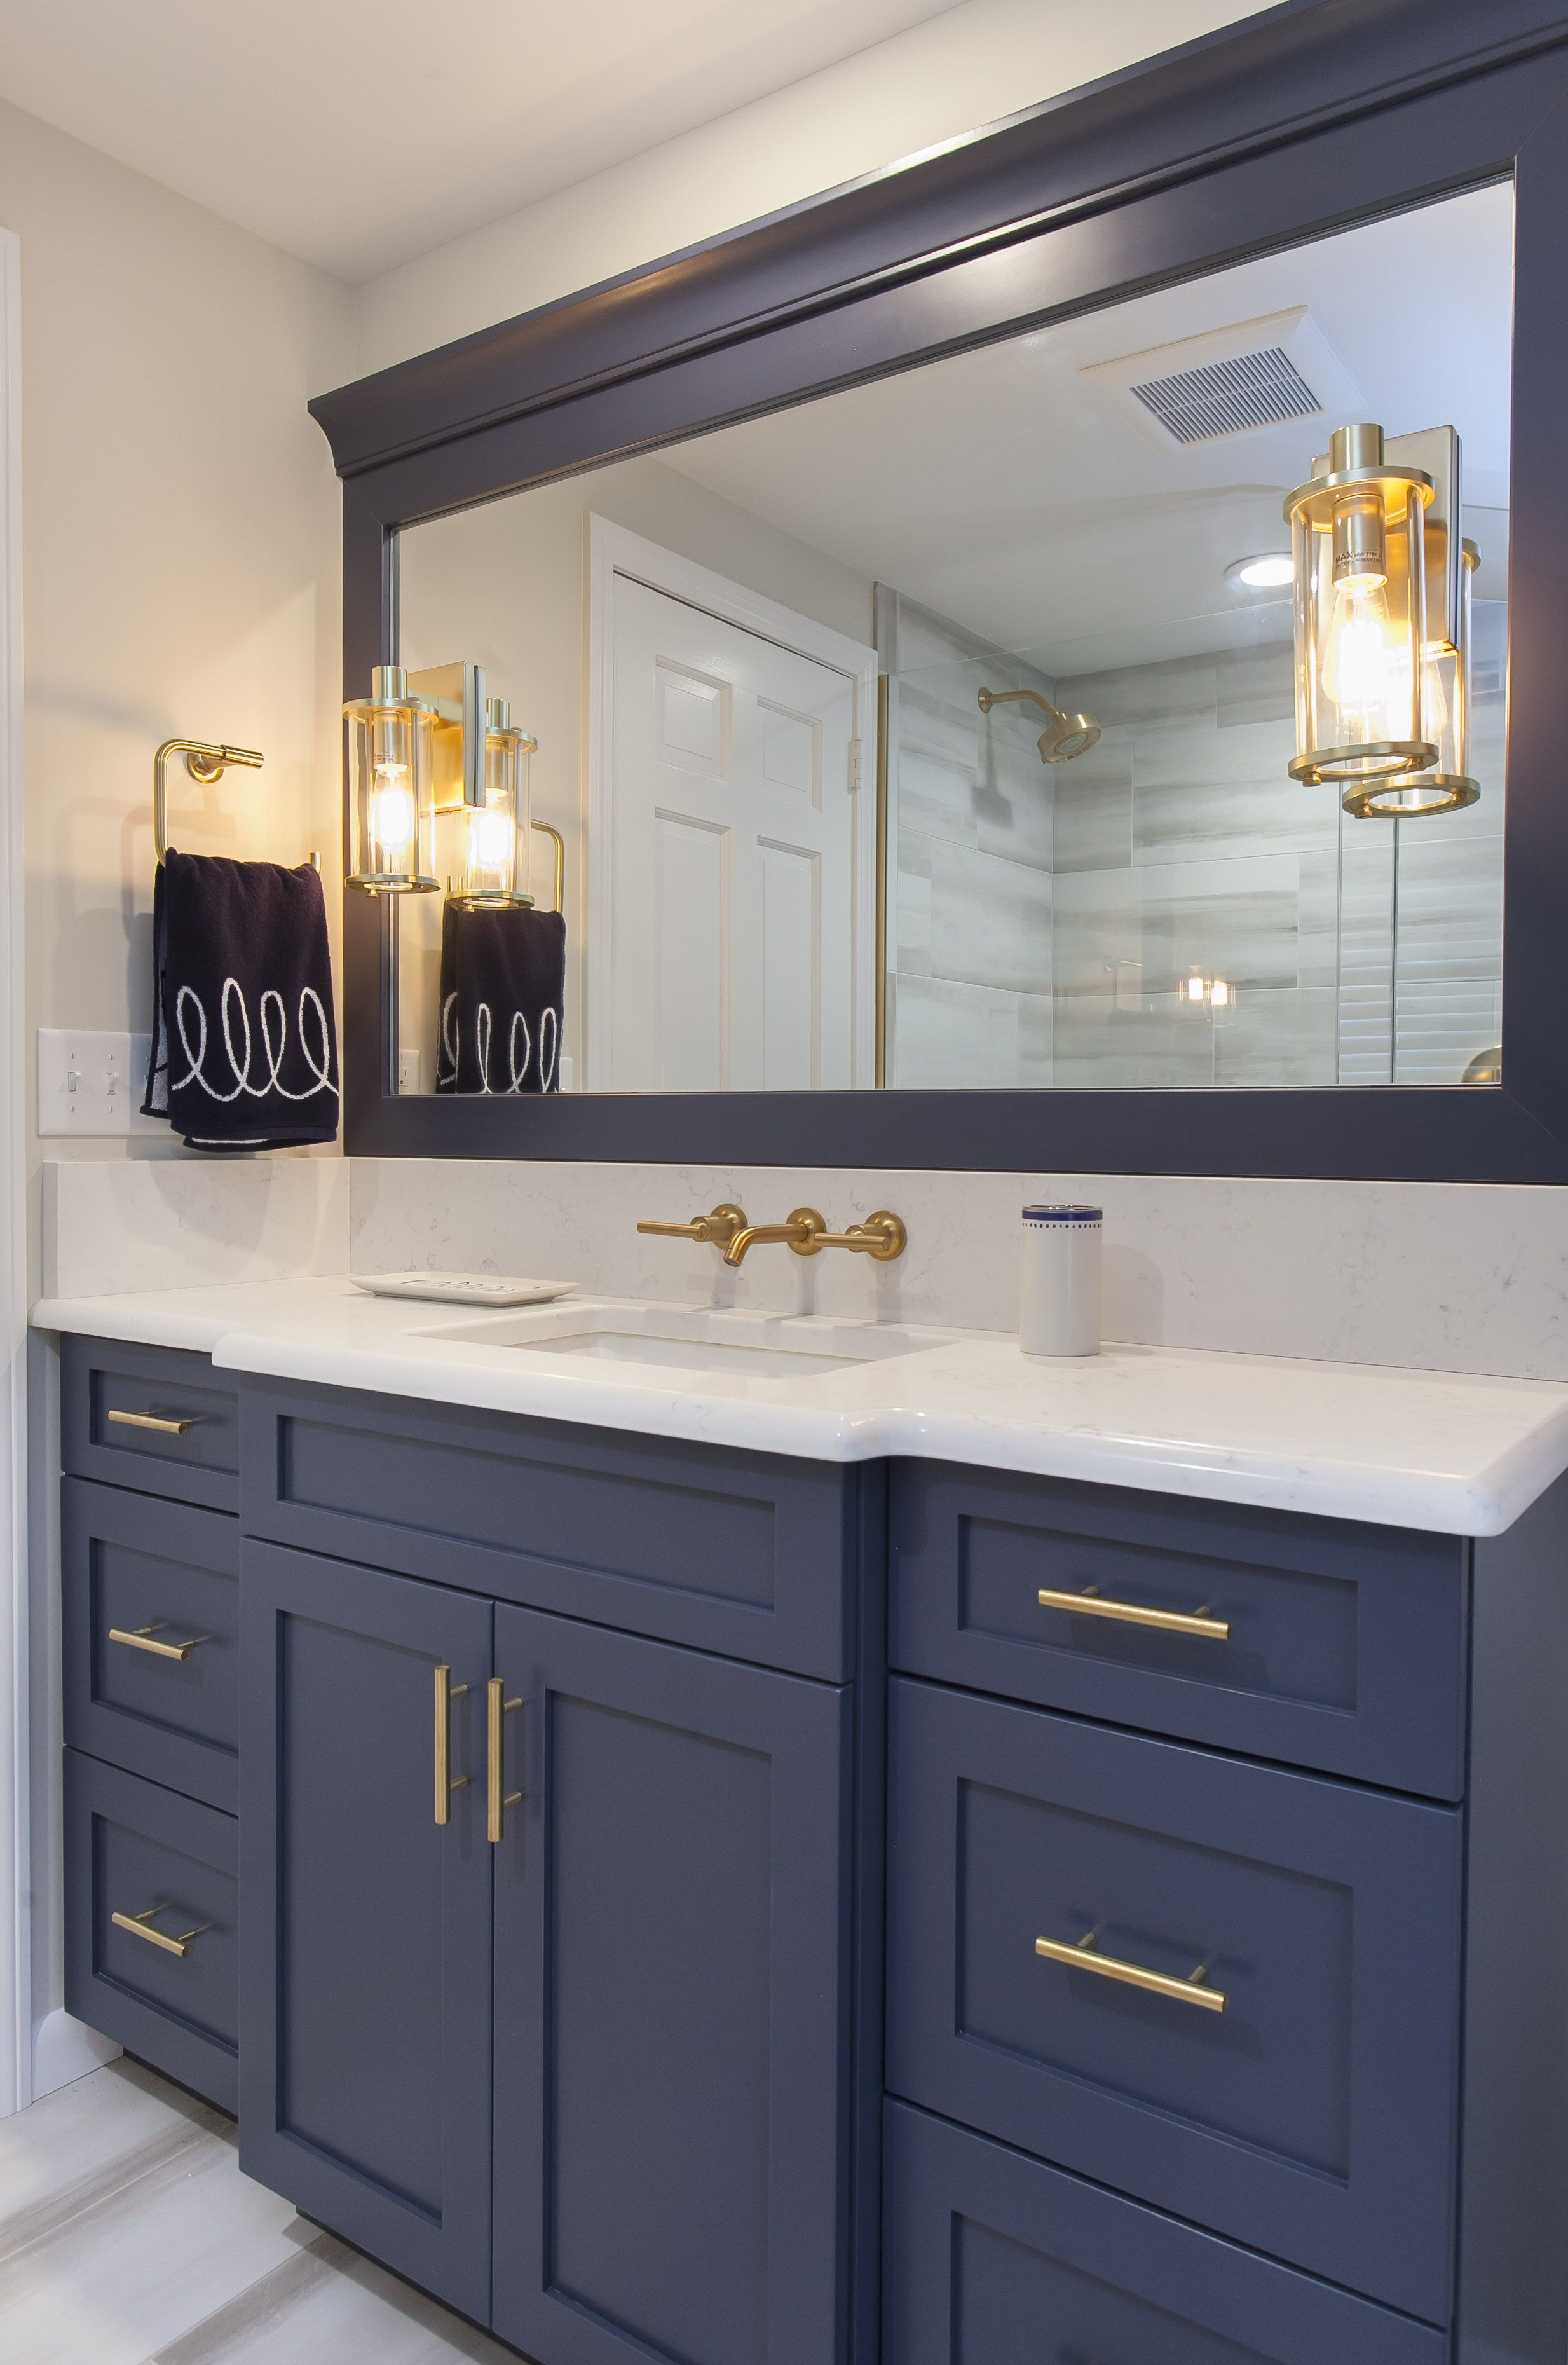 Custom Painted Vanity From Ultracraft Cabinetry Paintedcabinets Bathroom Bluecabinets Vanity Bathrooms Remodel Bath Design Kitchen And Bath